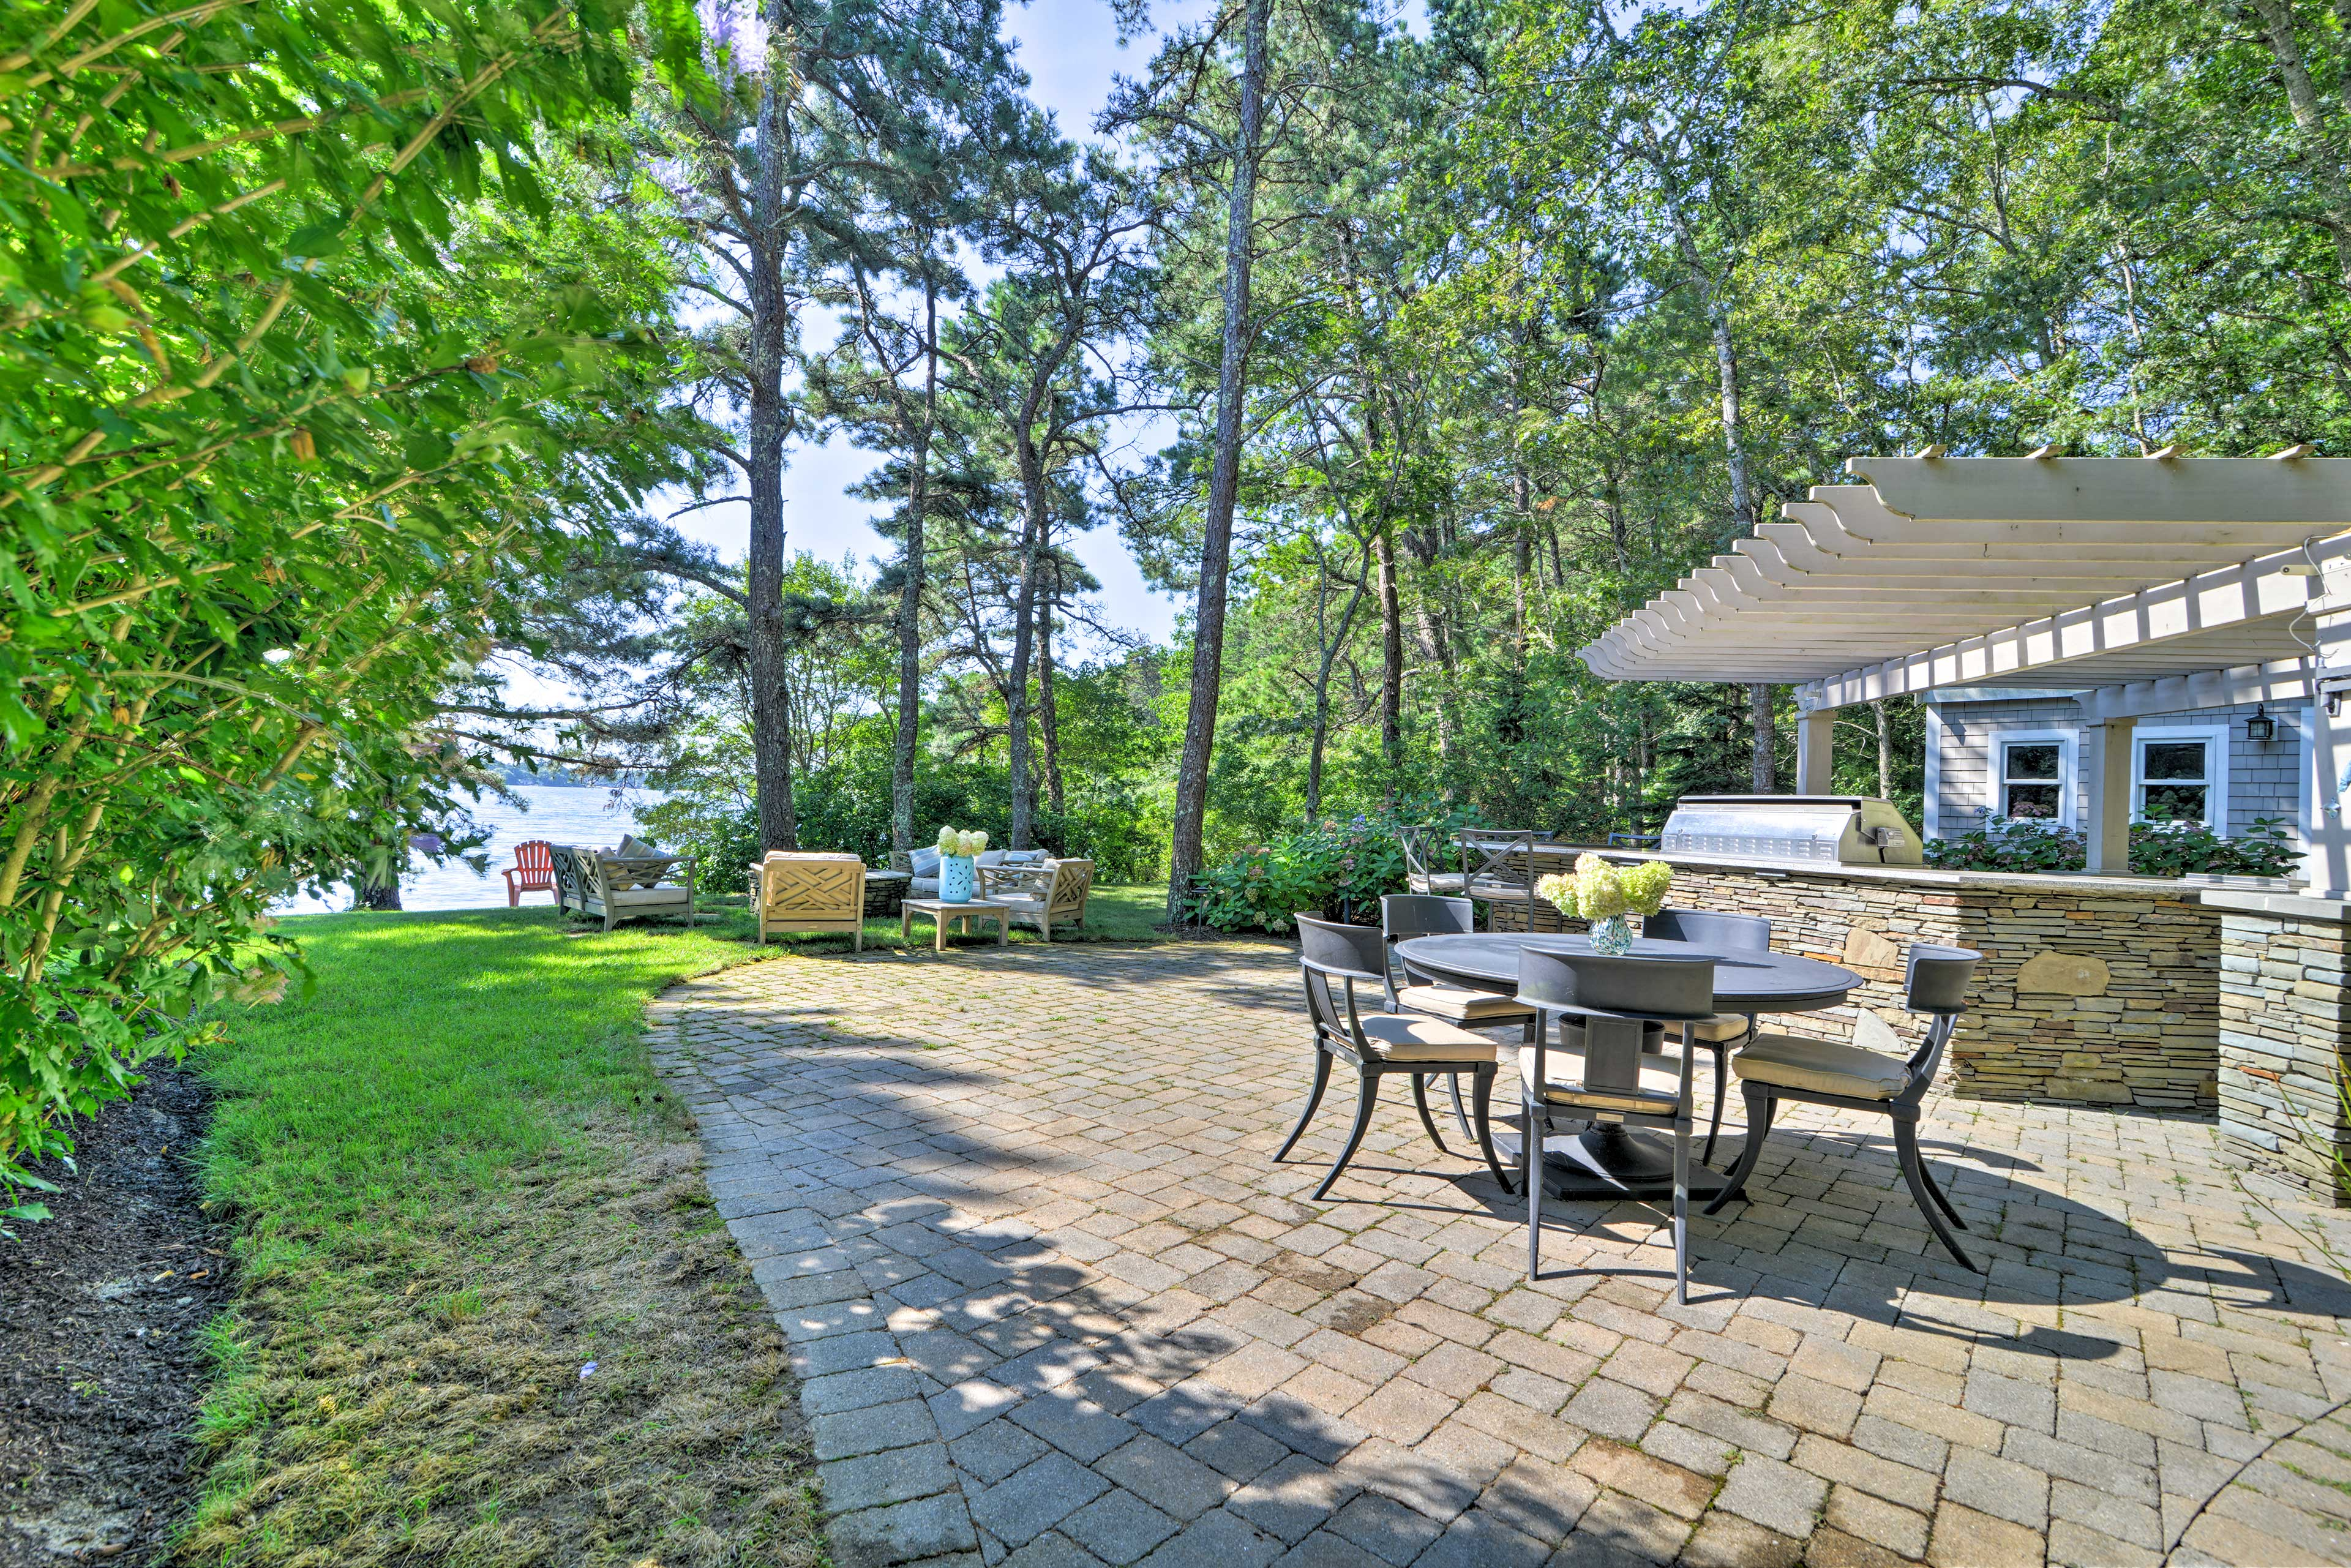 You'll love utilizing the outdoor kitchen and dining set!